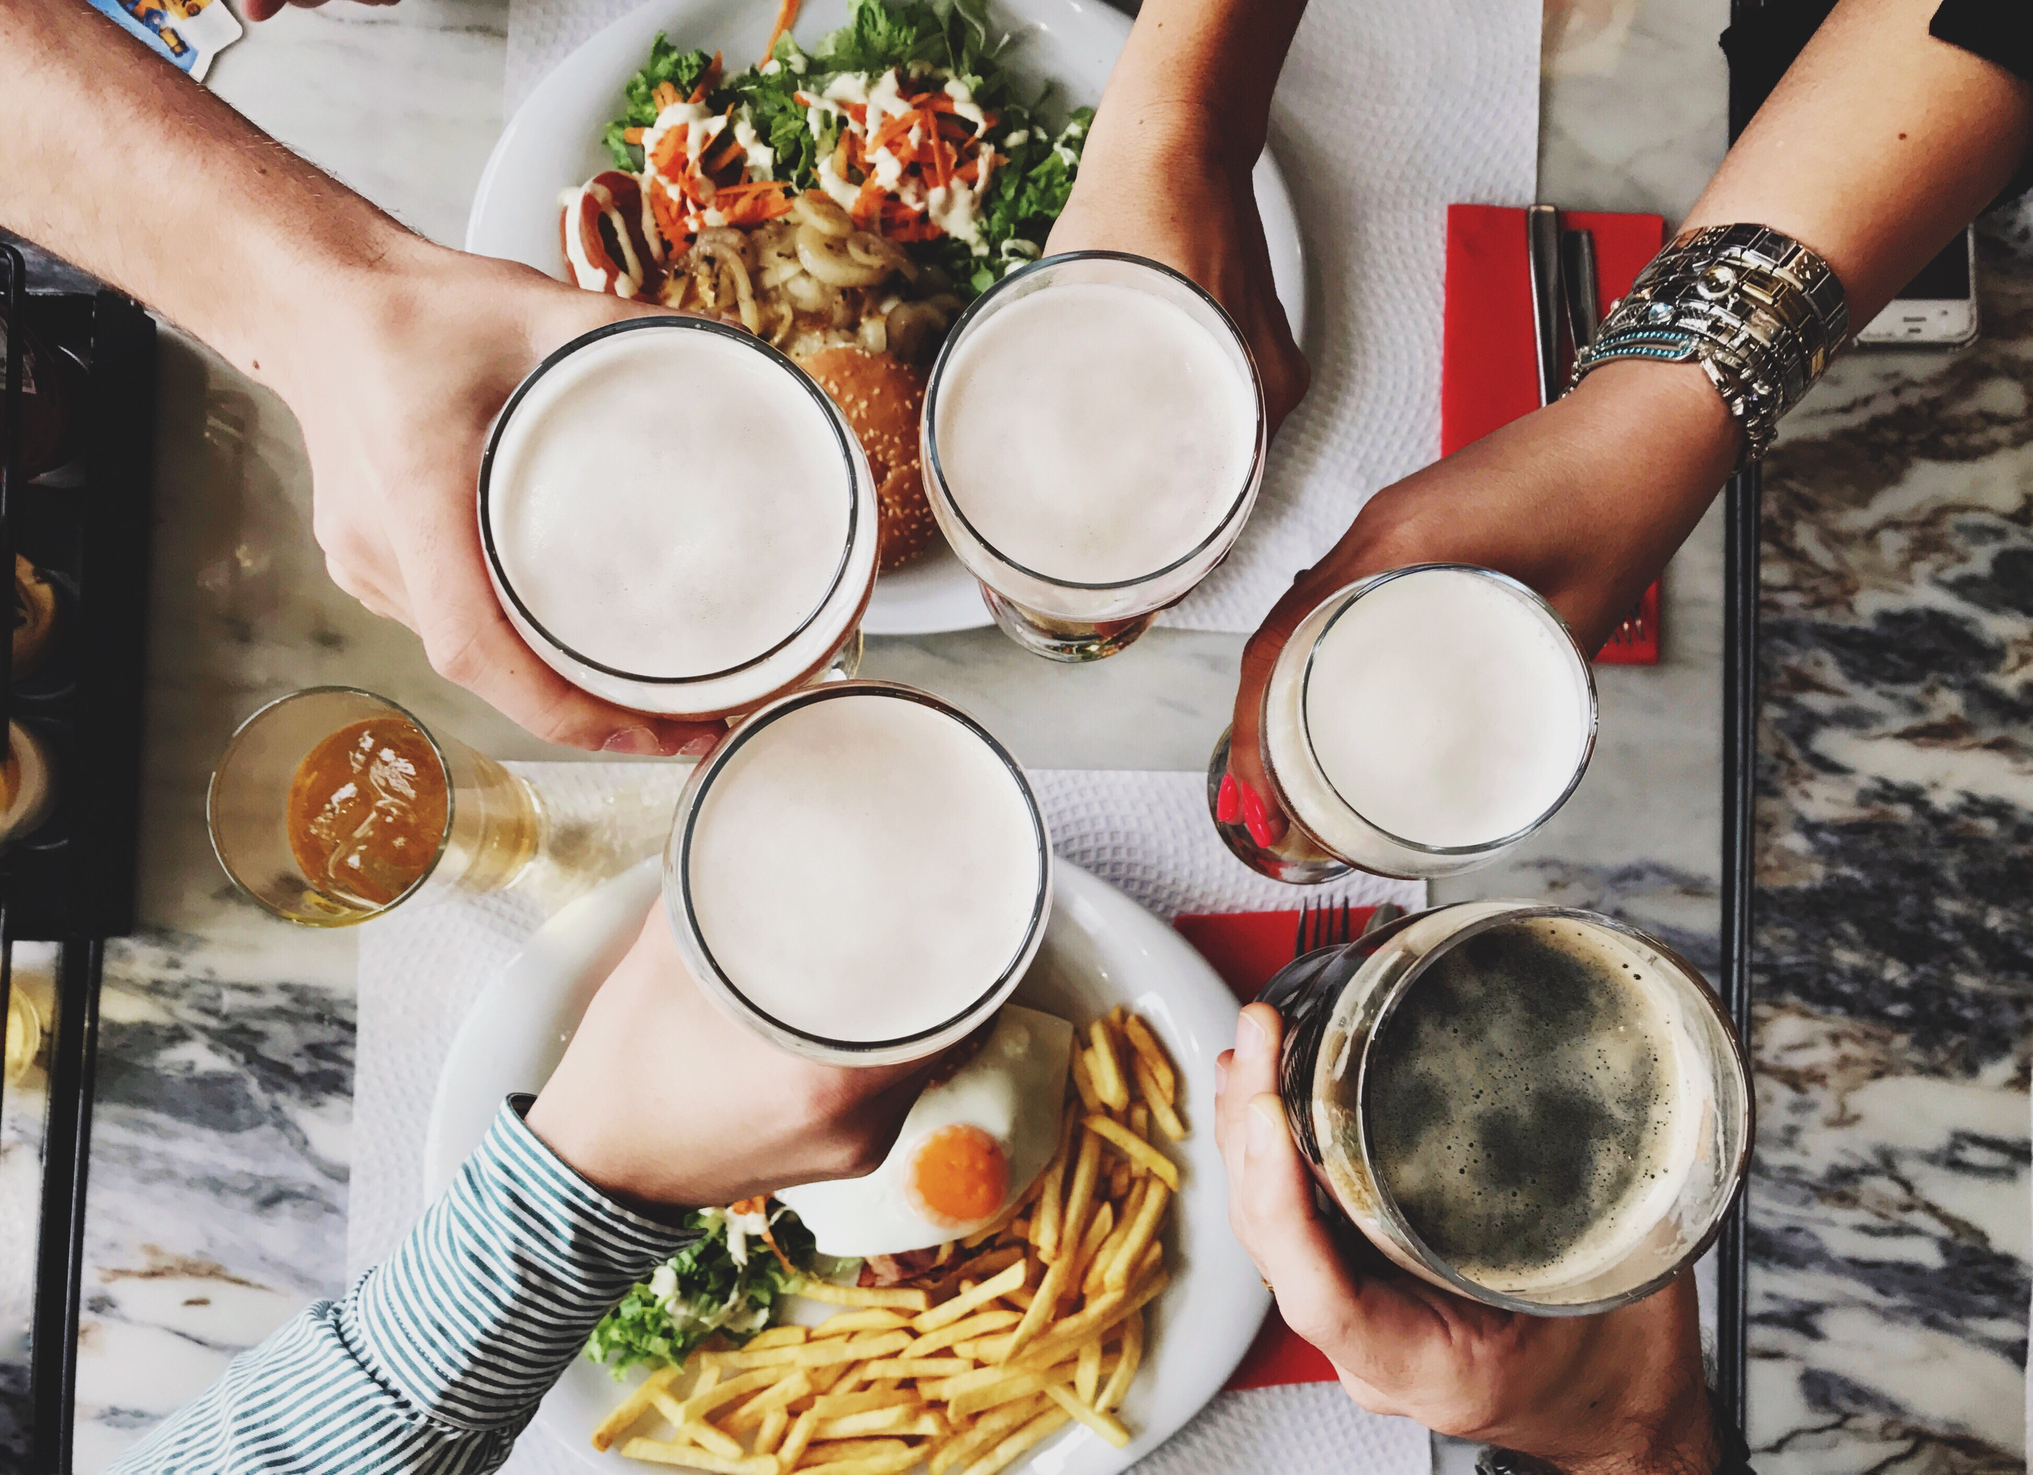 hydration, lifestyle, alcohol consumption, blood sugar and alcohol, fitness freak, diet plans, calorie intake with alcohol, weight problems, India,